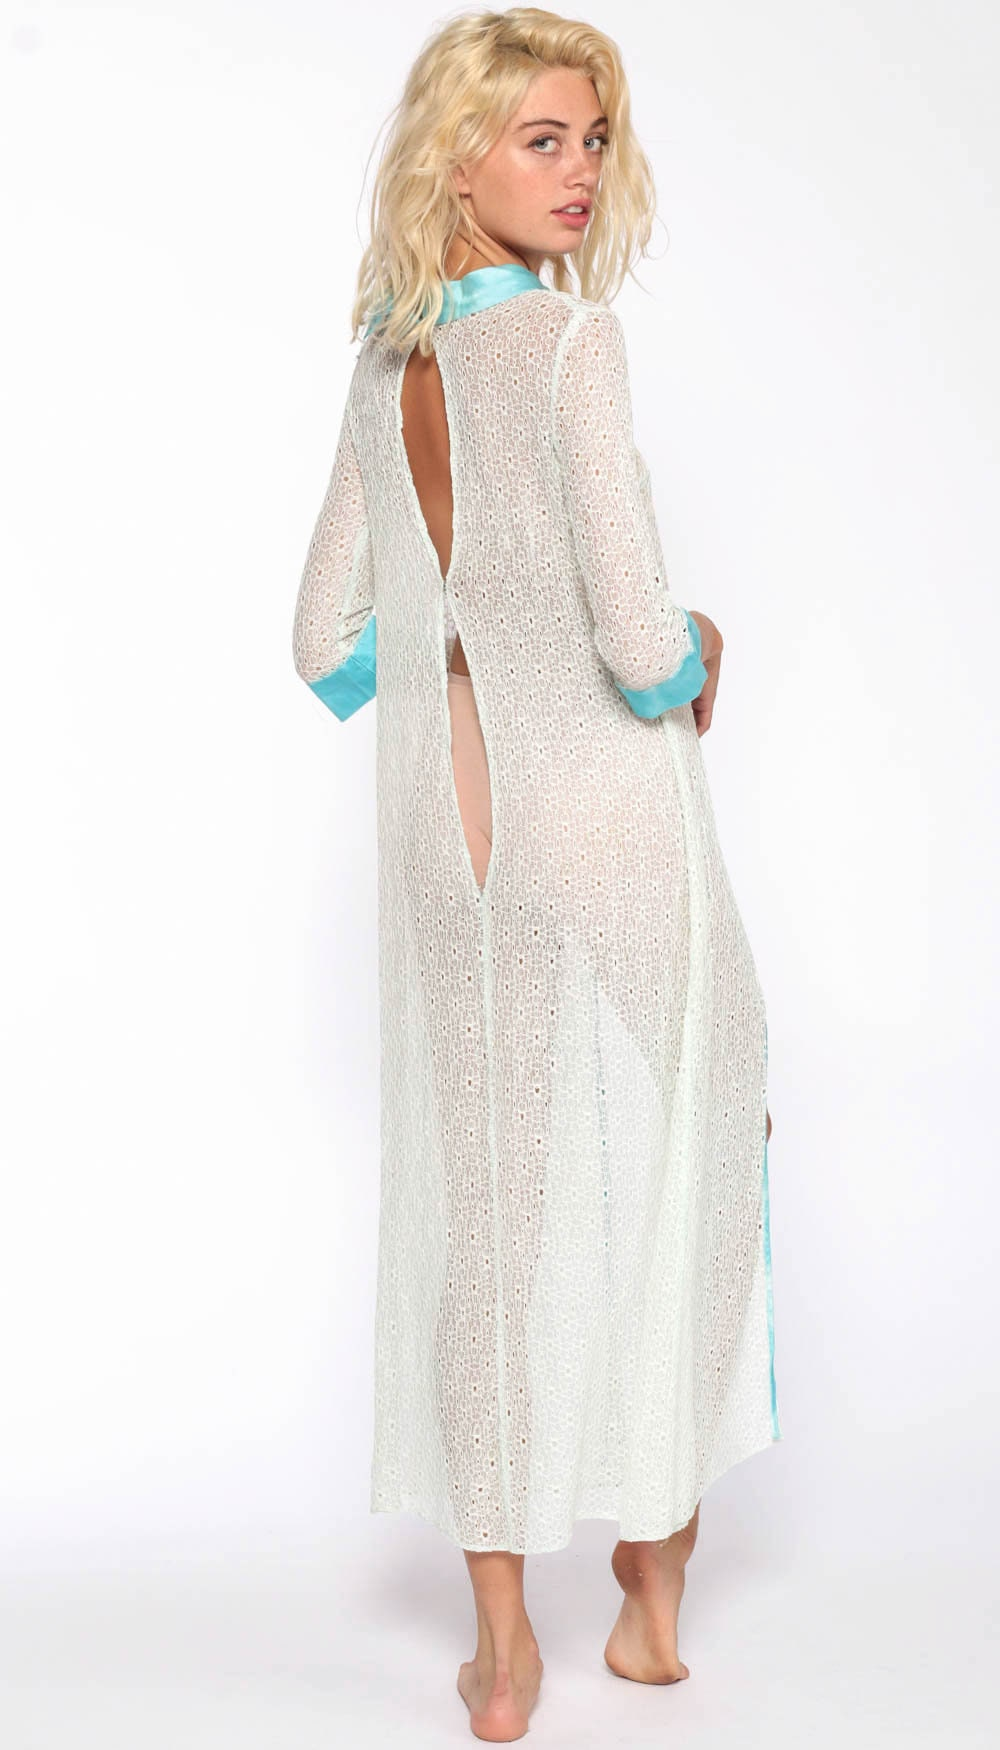 Lace Nightgown Lingerie Dress 70s Maxi White Blue Open Front Robe High Slit Boho Sheer Nightie Vintage Bohemian Extra Small xs